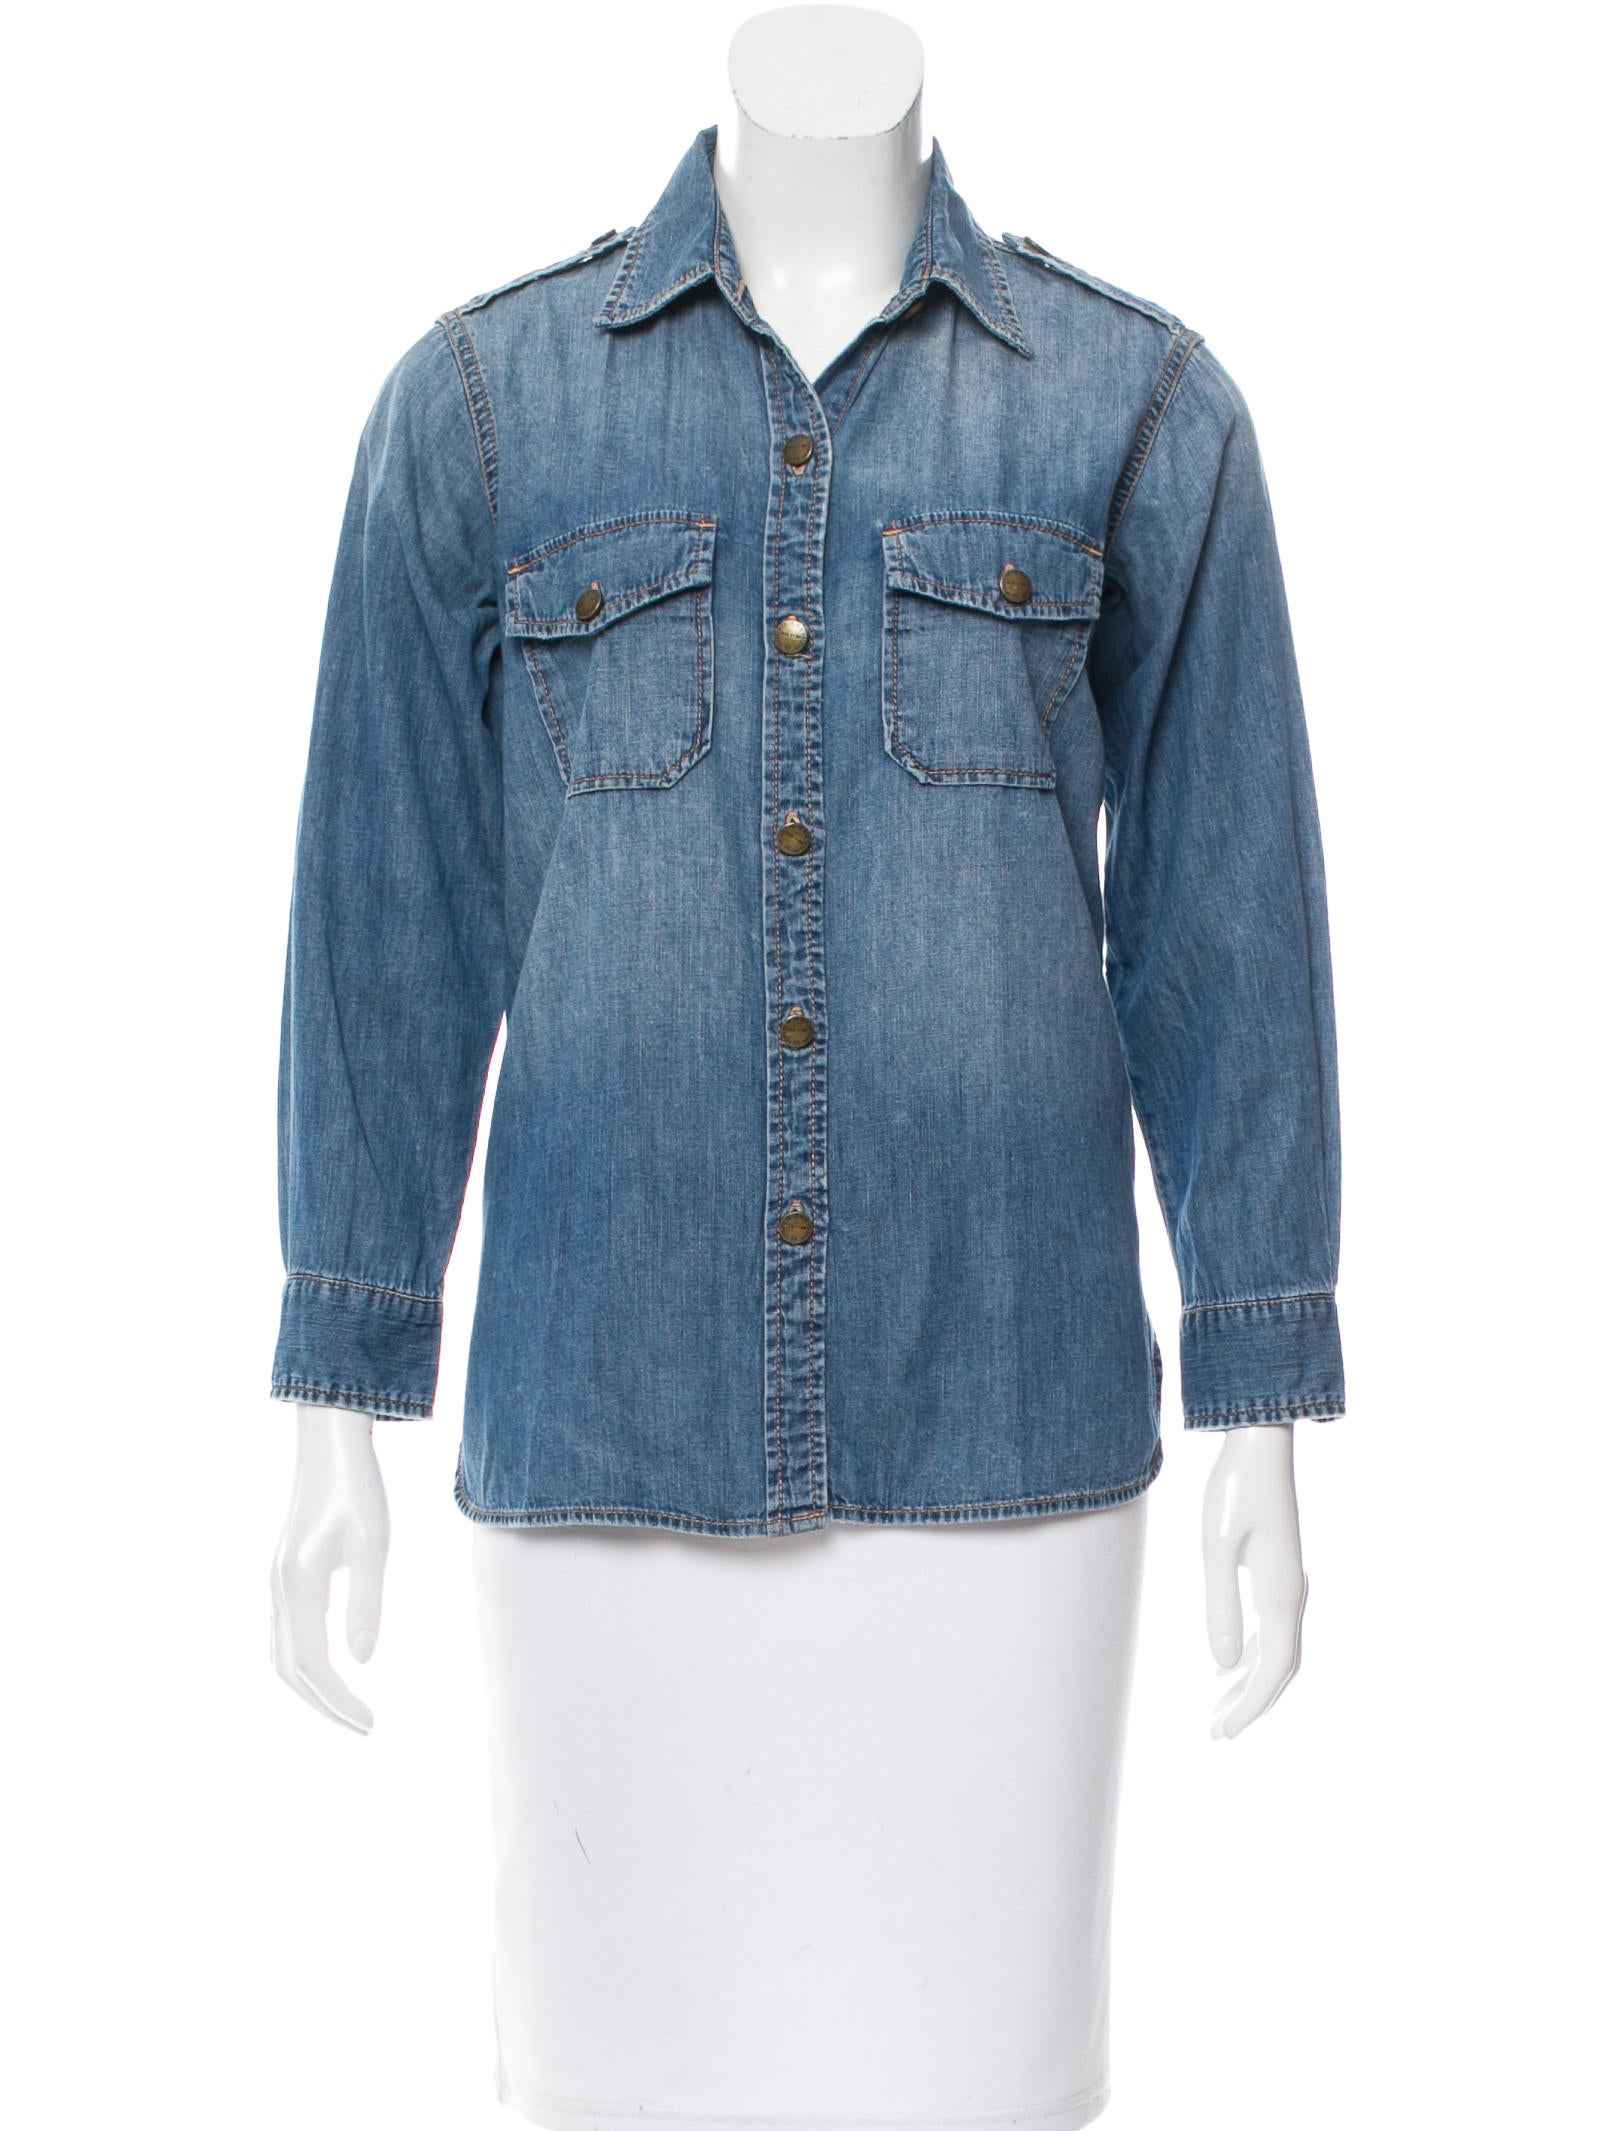 New Listing J Crew Denim Button Up Jeans Wide Leg Crop Wide Cuff Size 8 Short CL2. Pre-Owned. $ or Best Offer Top Rated Plus. Sellers with highest buyer ratings; Returns, money back Old Navy Size 10 Reg. Women Blue Jeans Button Up Fly / % Cotton Denim. Old Navy · $ Was: Previous Price $ or Best Offer +$